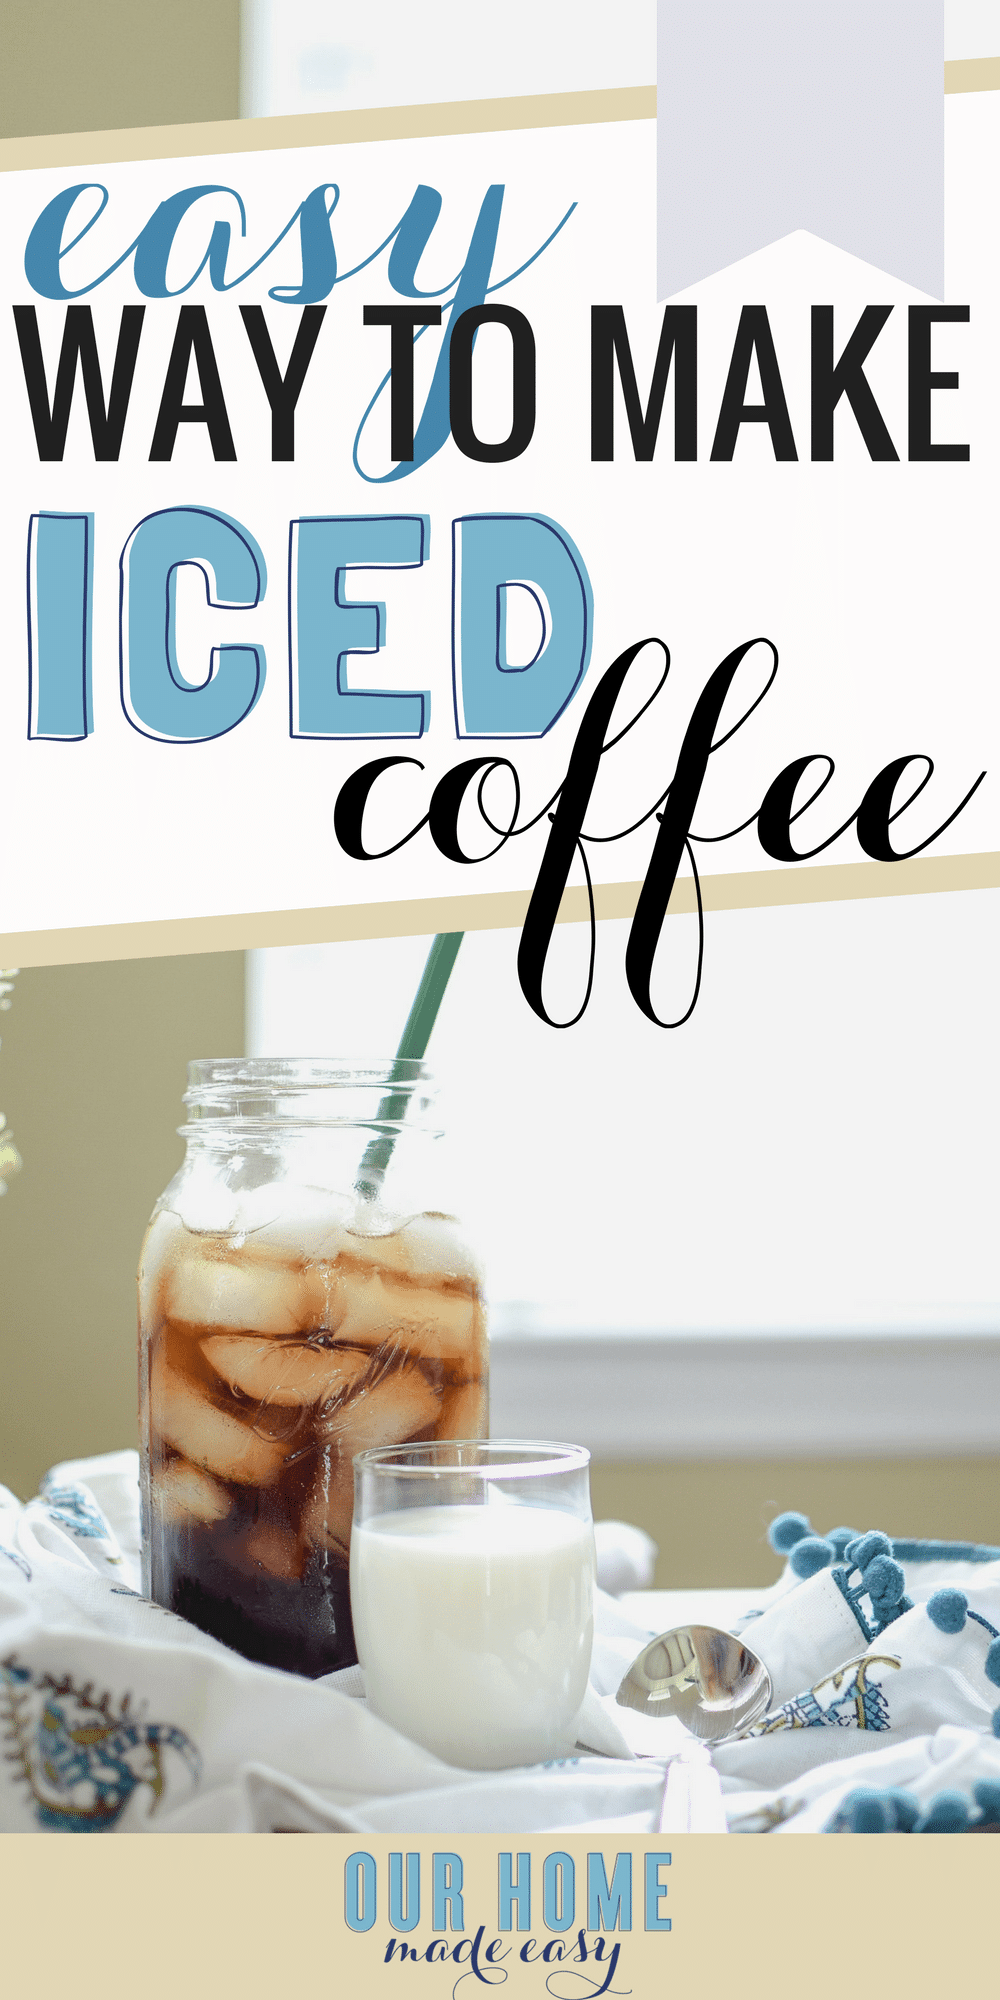 Make super easy cold brew for the perfect cup of iced coffee! Cold brew is less bitter than regular coffee and is so tasty! Click over to see the recipe and enjoy a cold glass now!